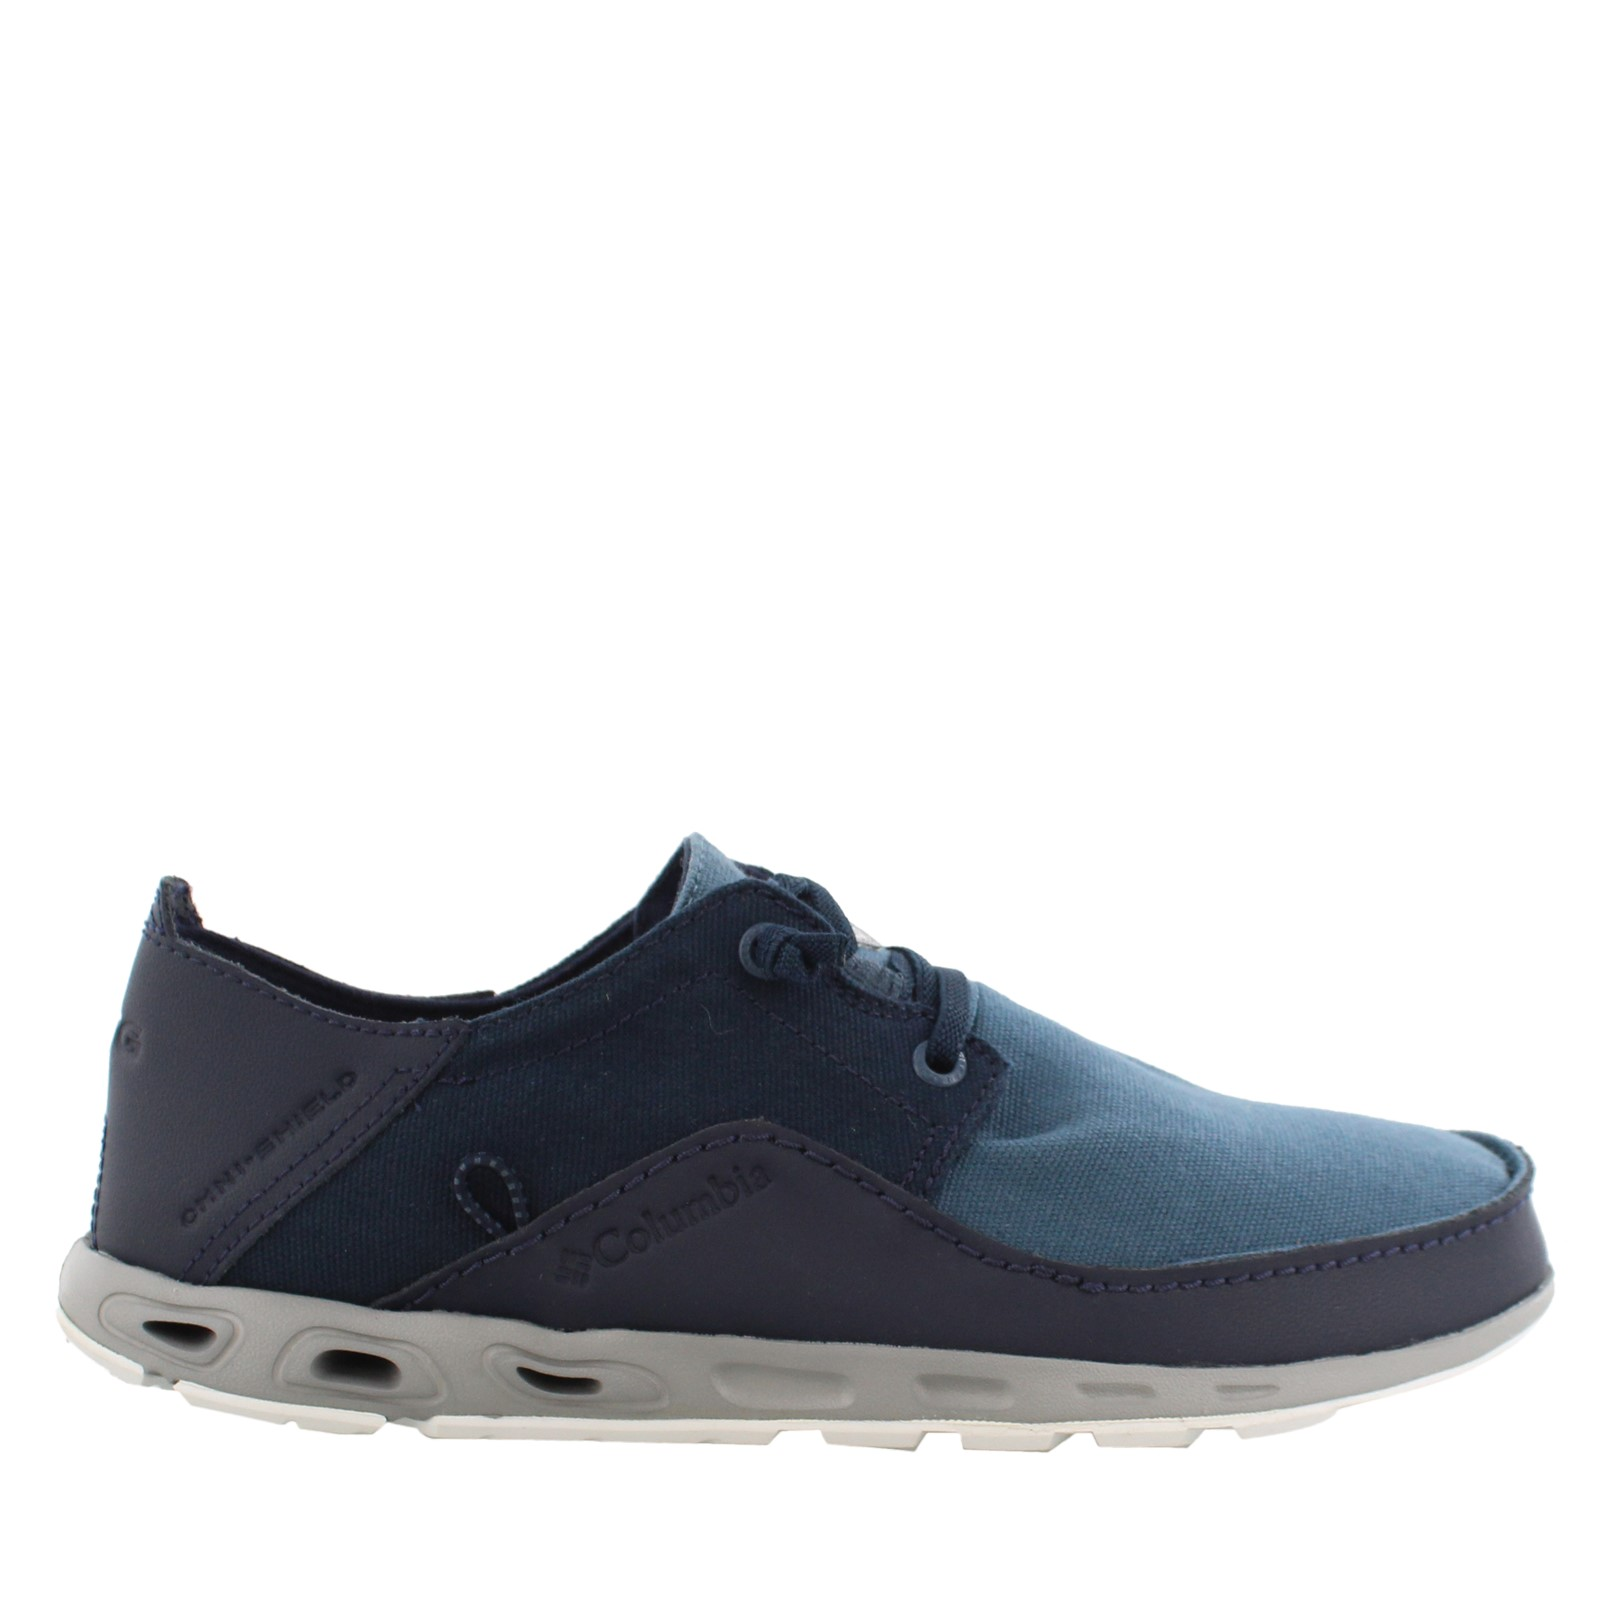 289954949f5 Home; Men's Columbia, PFG Bahama Vent Relaxed PFG Slip on Shoes. Previous.  default view · 1 ...